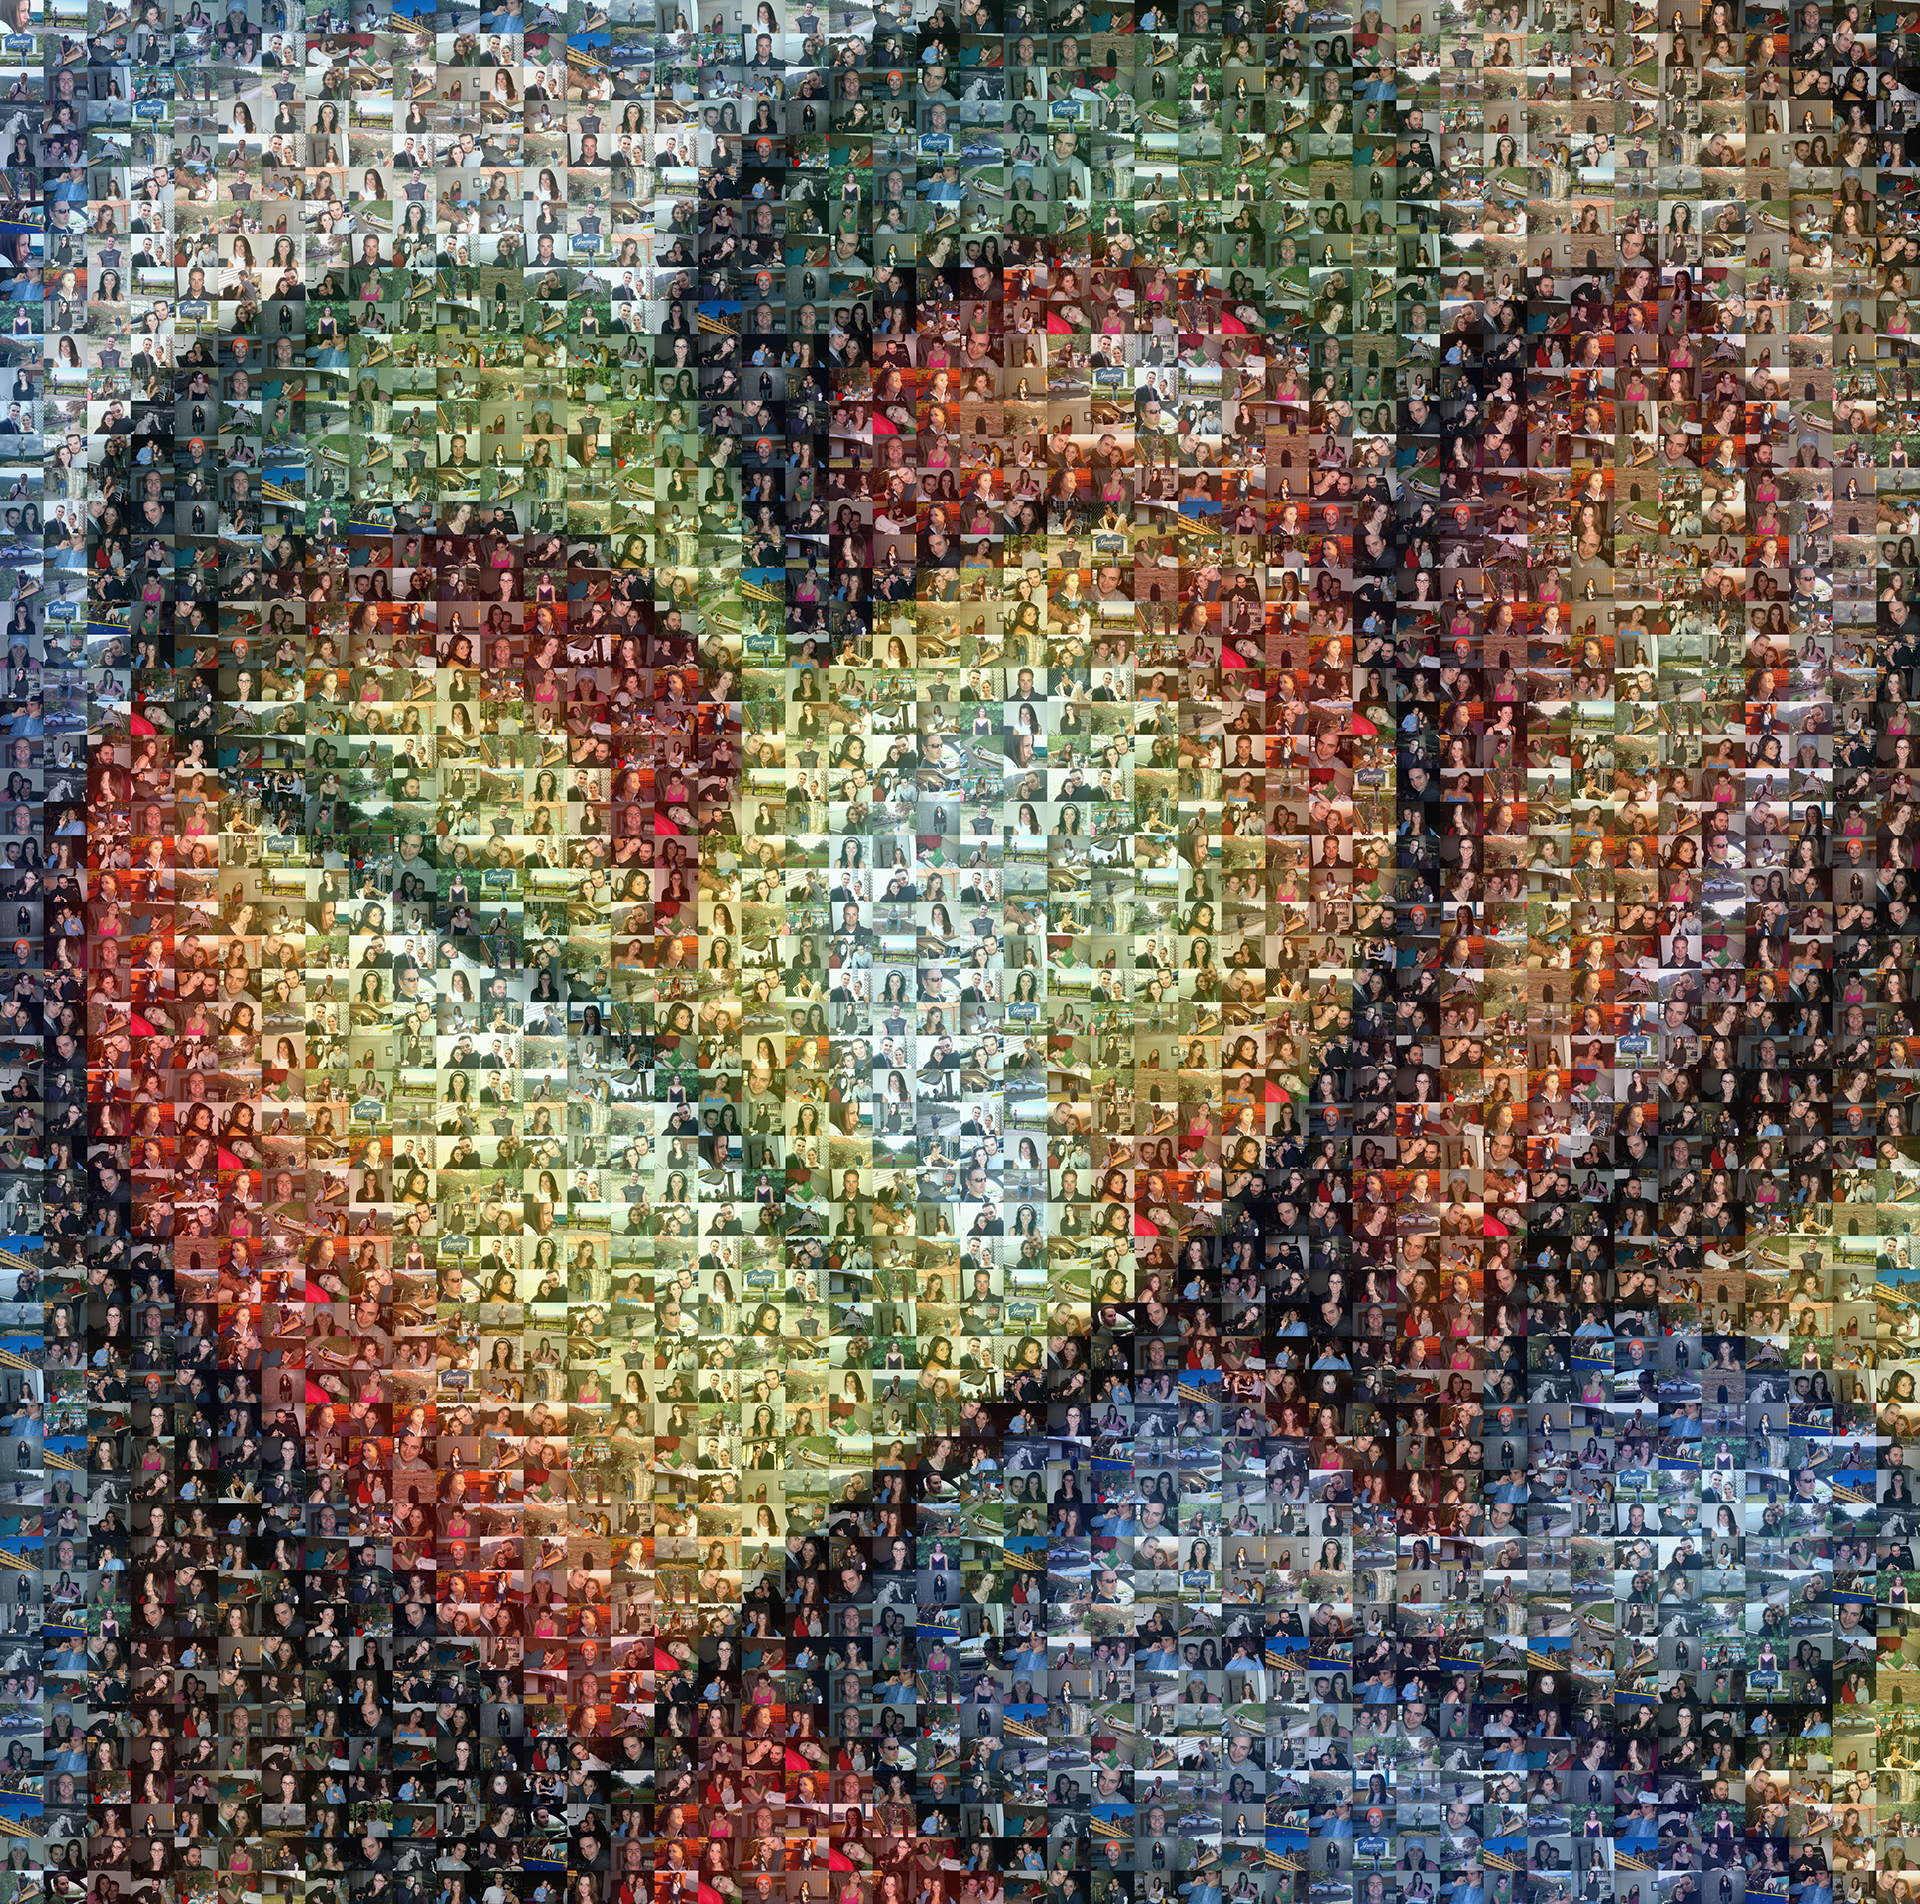 photo mosaic created using 208 customer selected photos